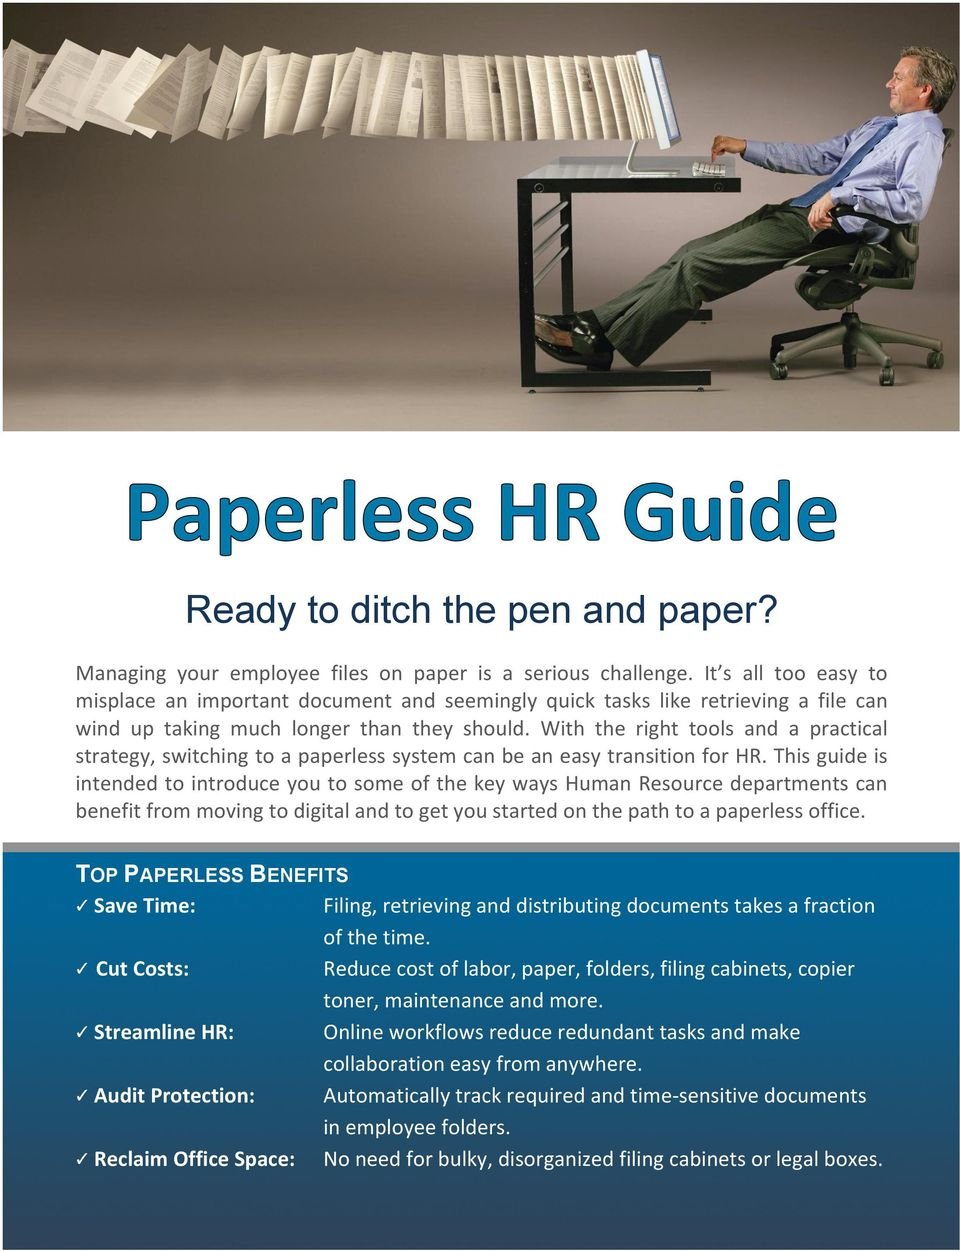 With the right tools and a practical strategy, switching to a paperless system can be an easy transition for HR.